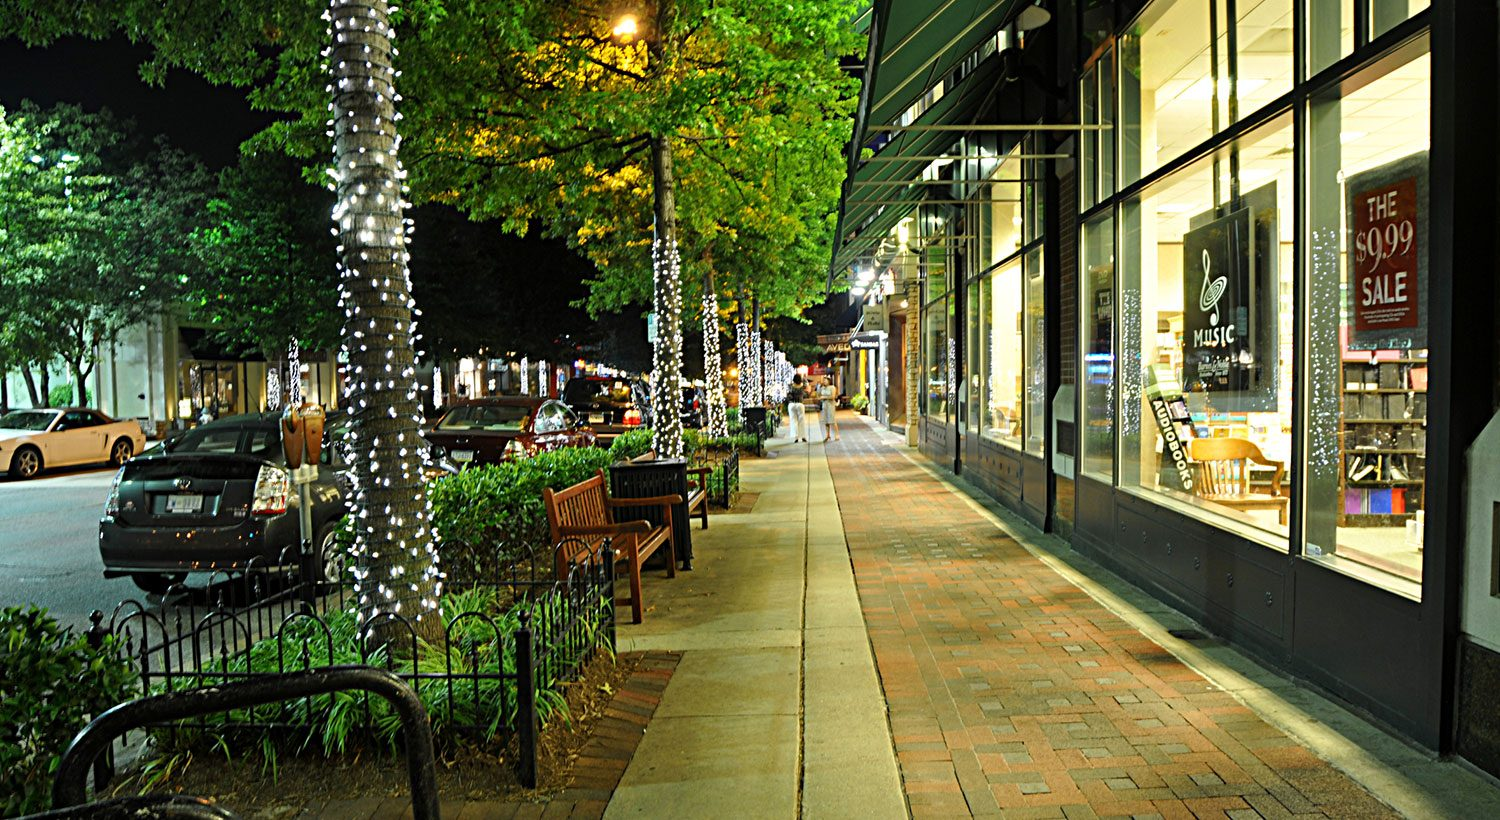 Bethesda sidewalk at night